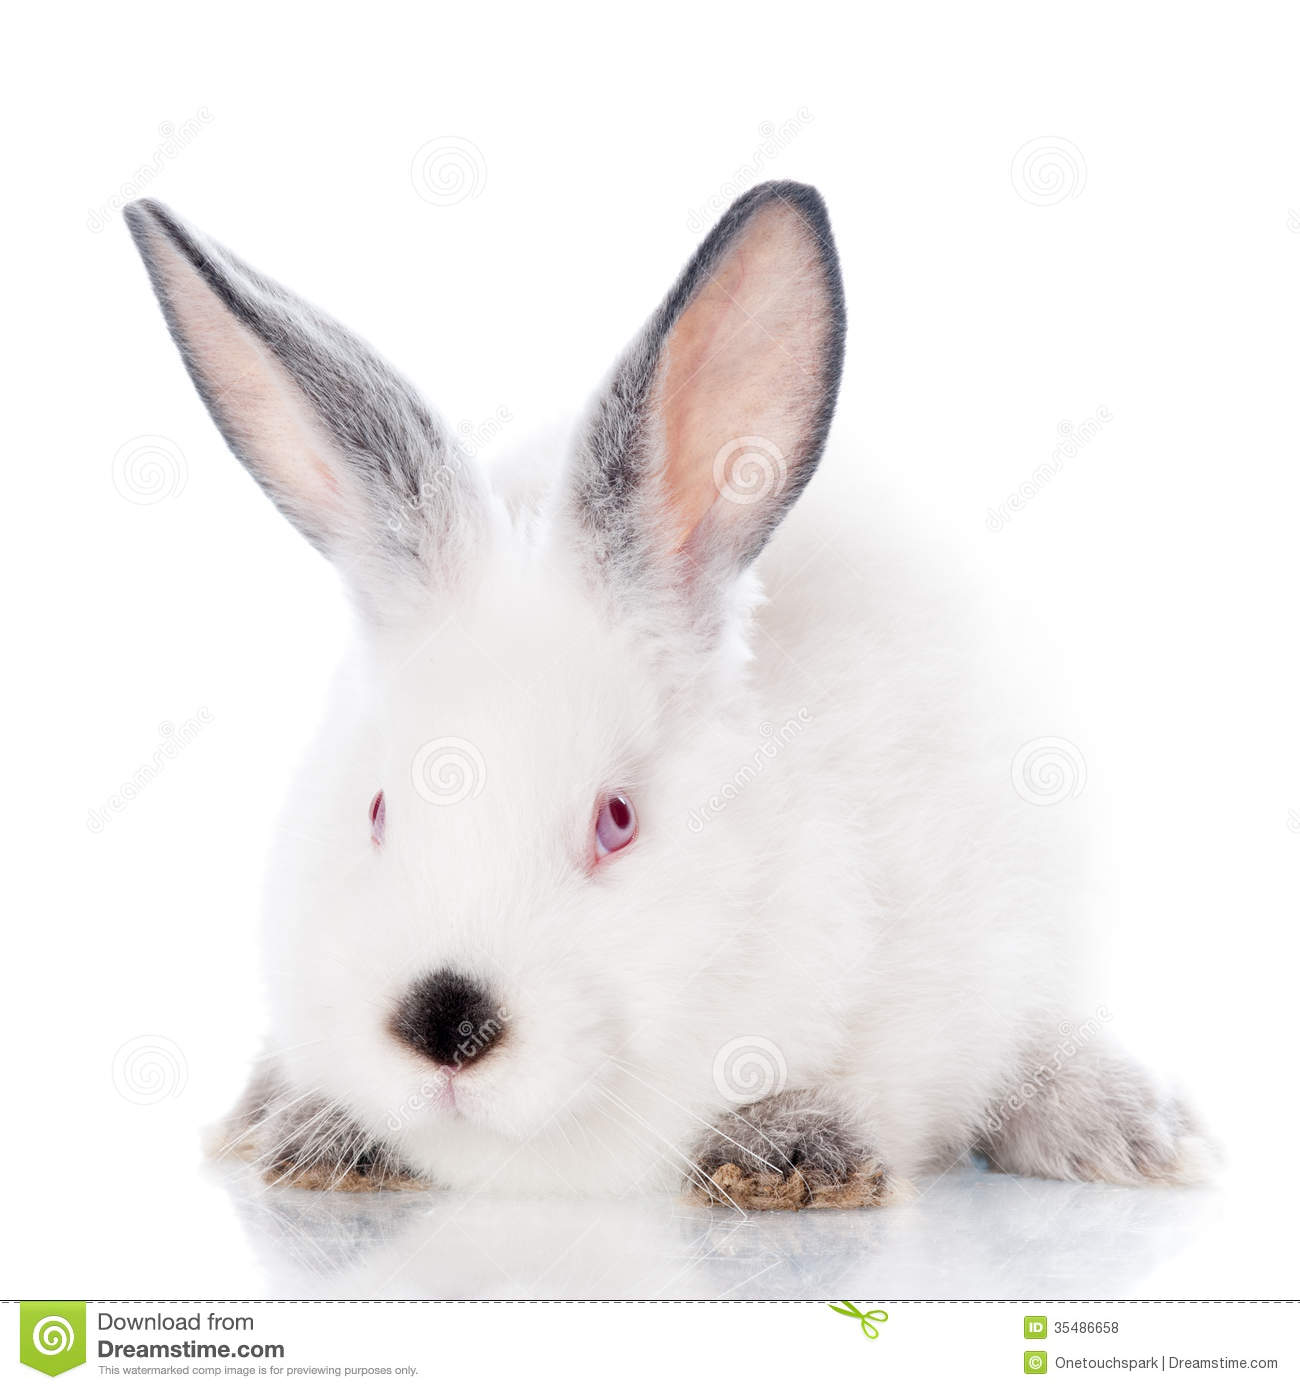 White rabbit with grey ears on white.